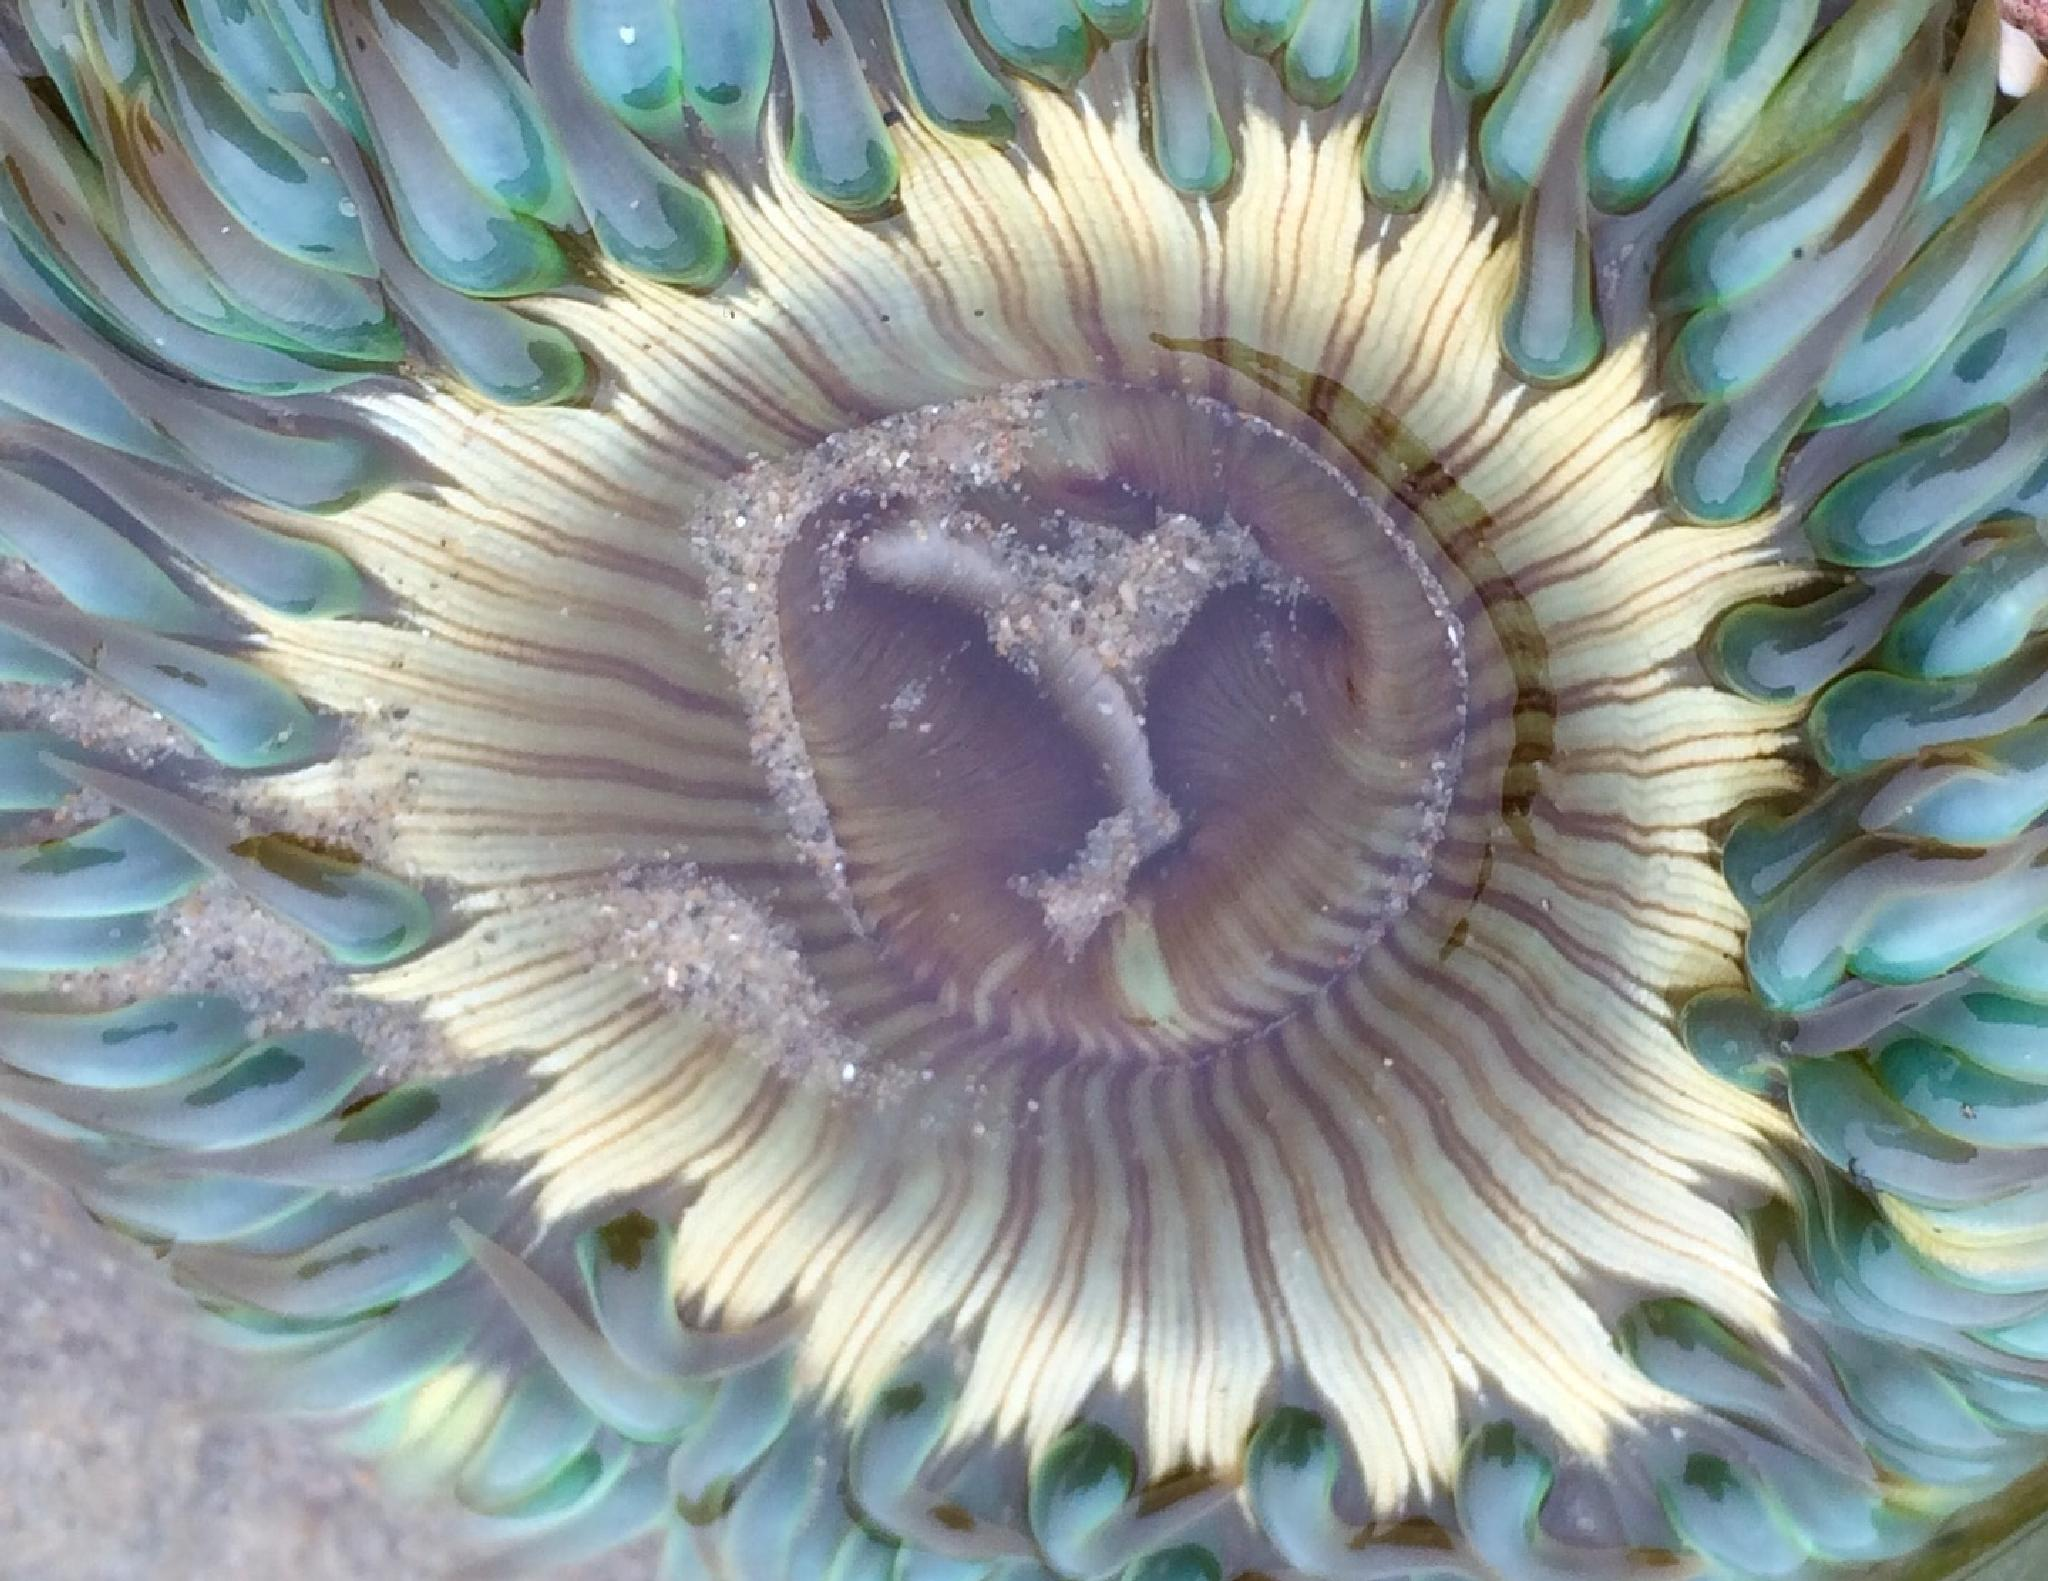 Anemone by Amy's pics